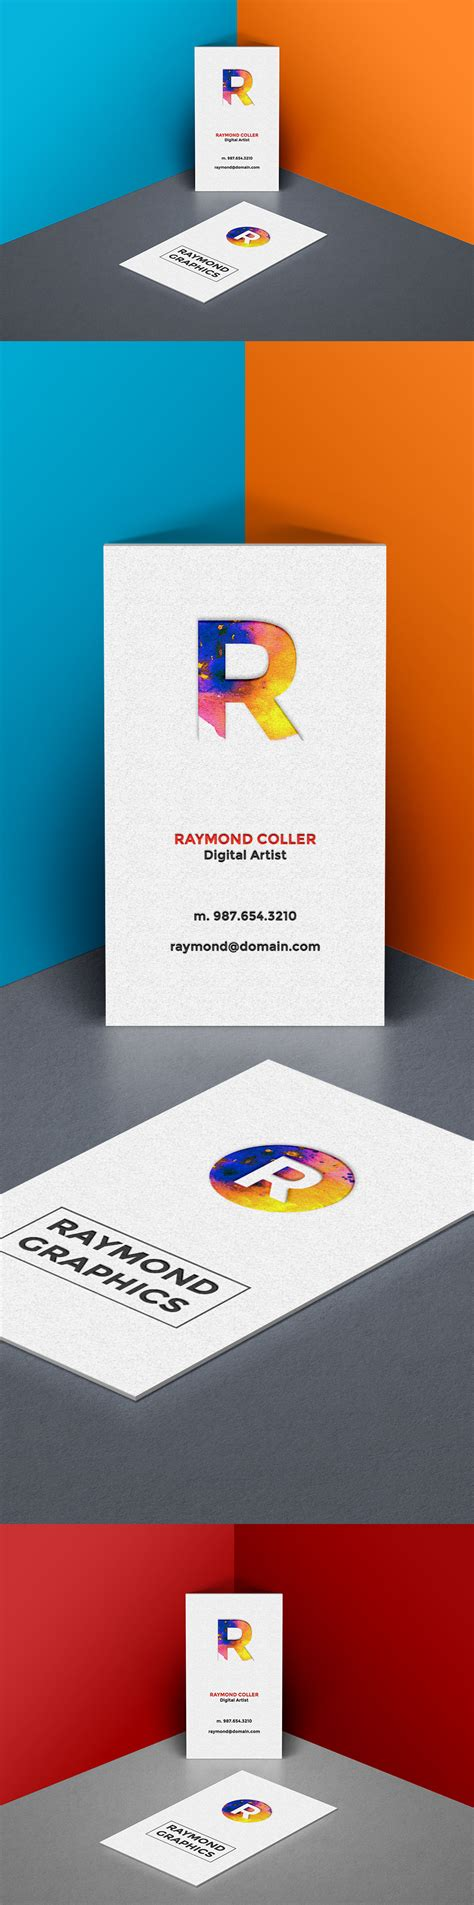 free business card mockup template age themes